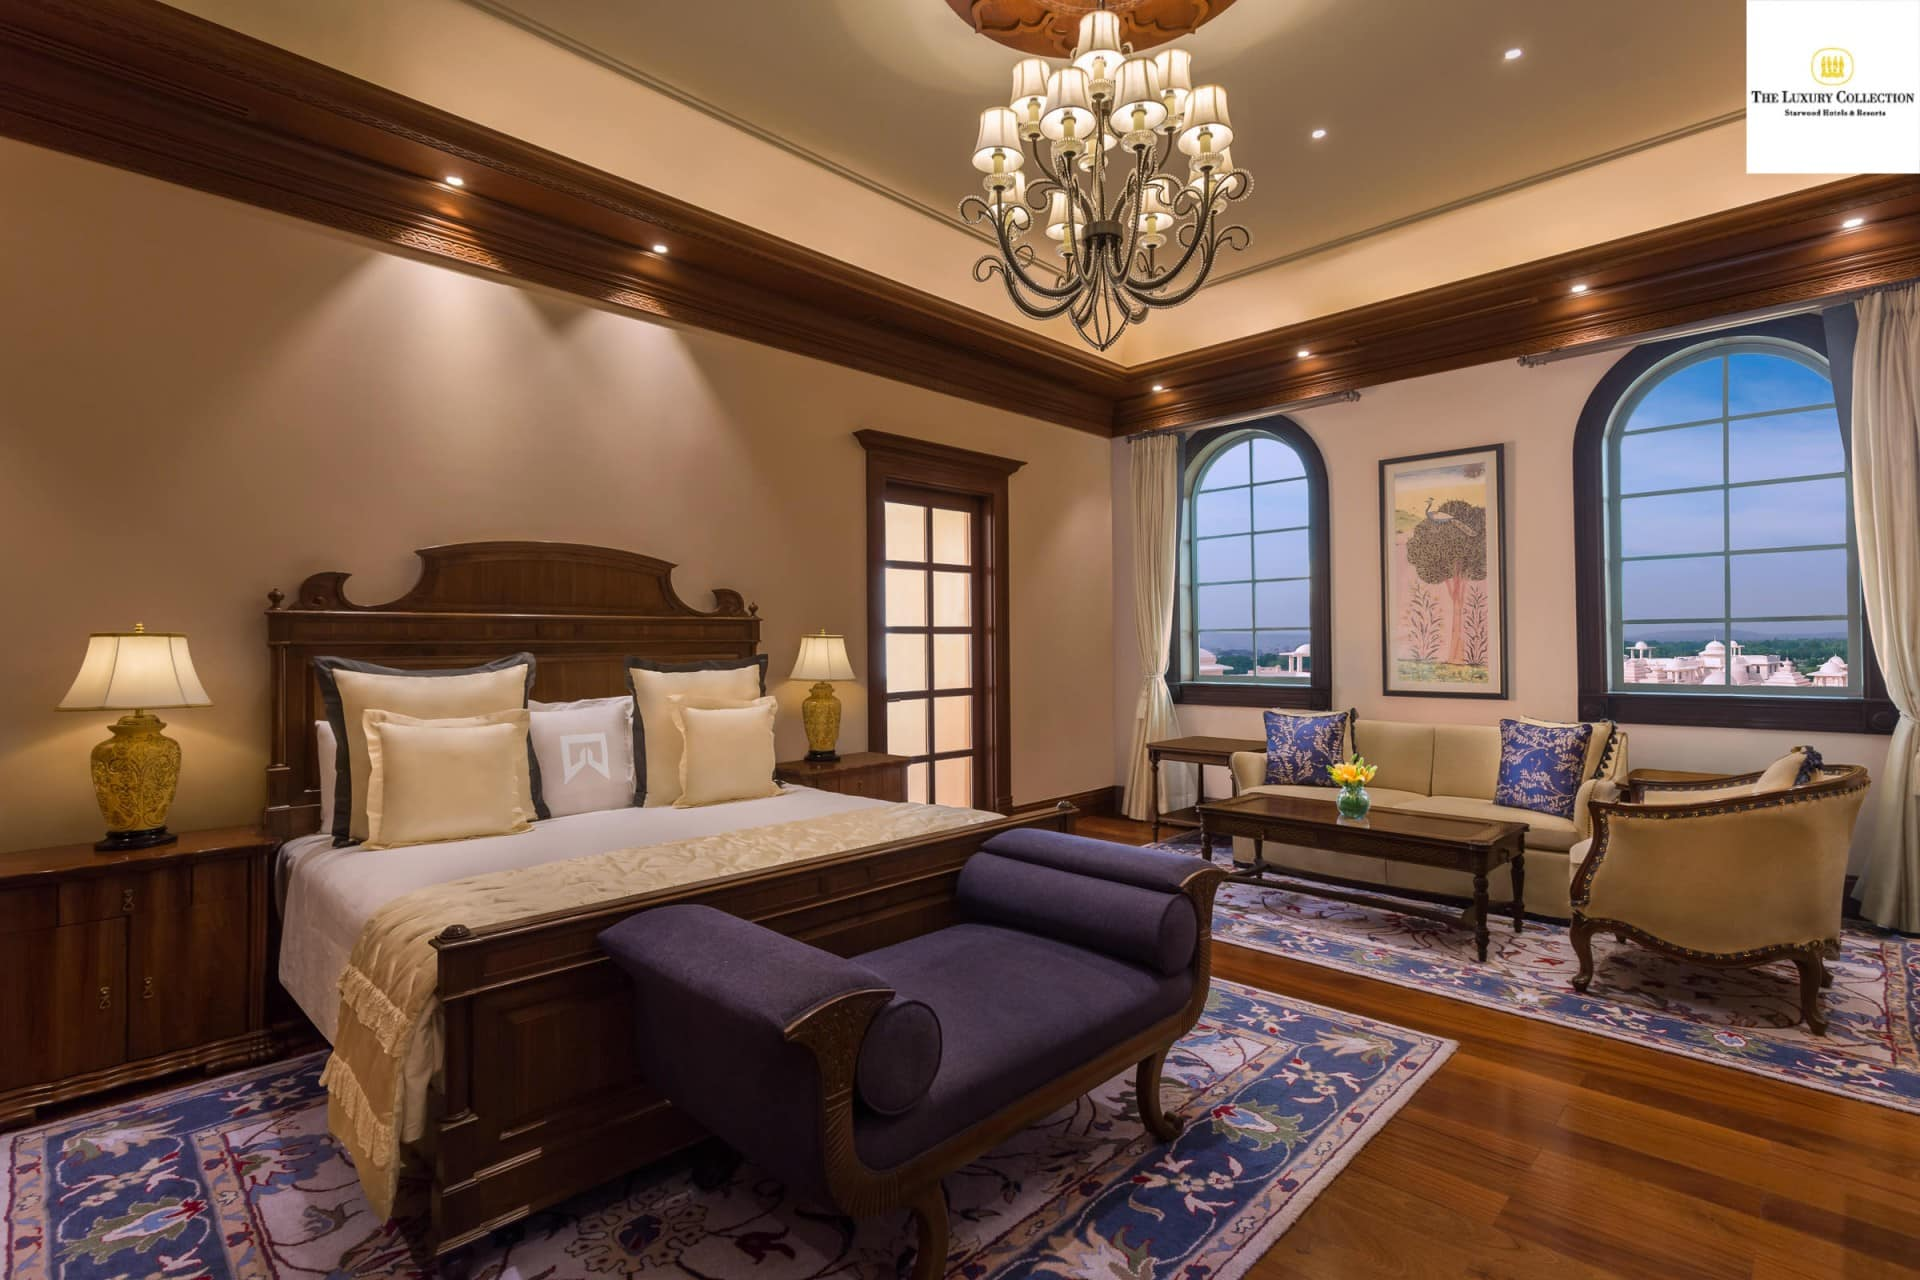 Best Architecture Photographer India   Collection of Luxury Grand Master Bedroom Photography Delhi